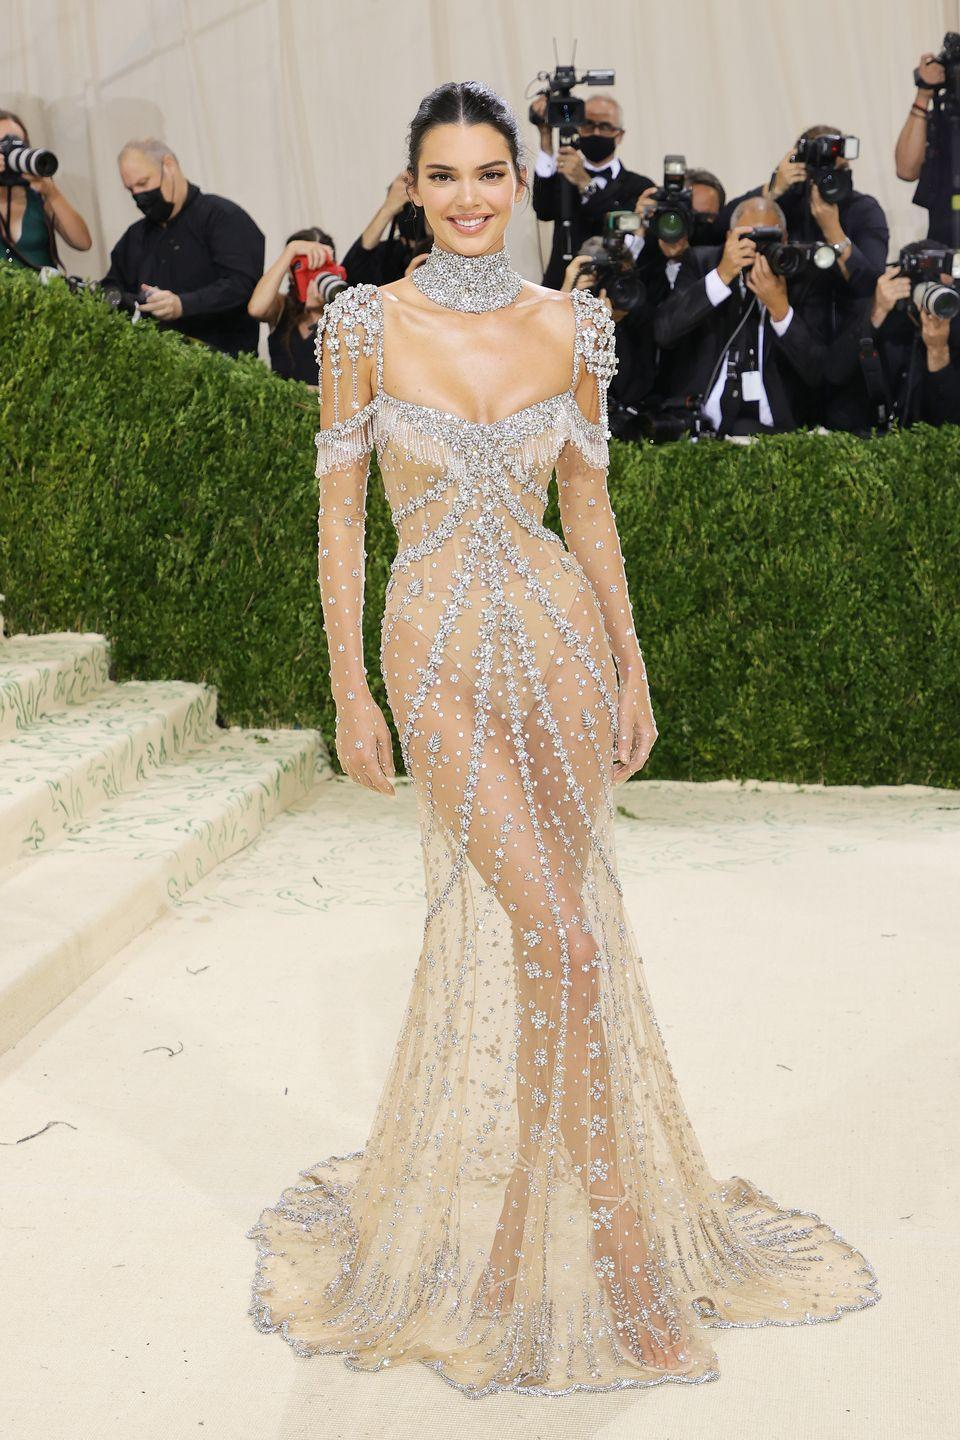 <p>Supermodel Kendall Jenner is no stranger to the Met Gala, and she is also no stranger to a sheer dress, but last night's custom Givenchy ensemble may have been her best effort to date. The gown – which was embellished with crystals and featured a fishtail train and a jewelled neckpiece – was inspired by the house's most famous muse, Audrey Hepburn, and a dress she wore in My Fair Lady.</p>